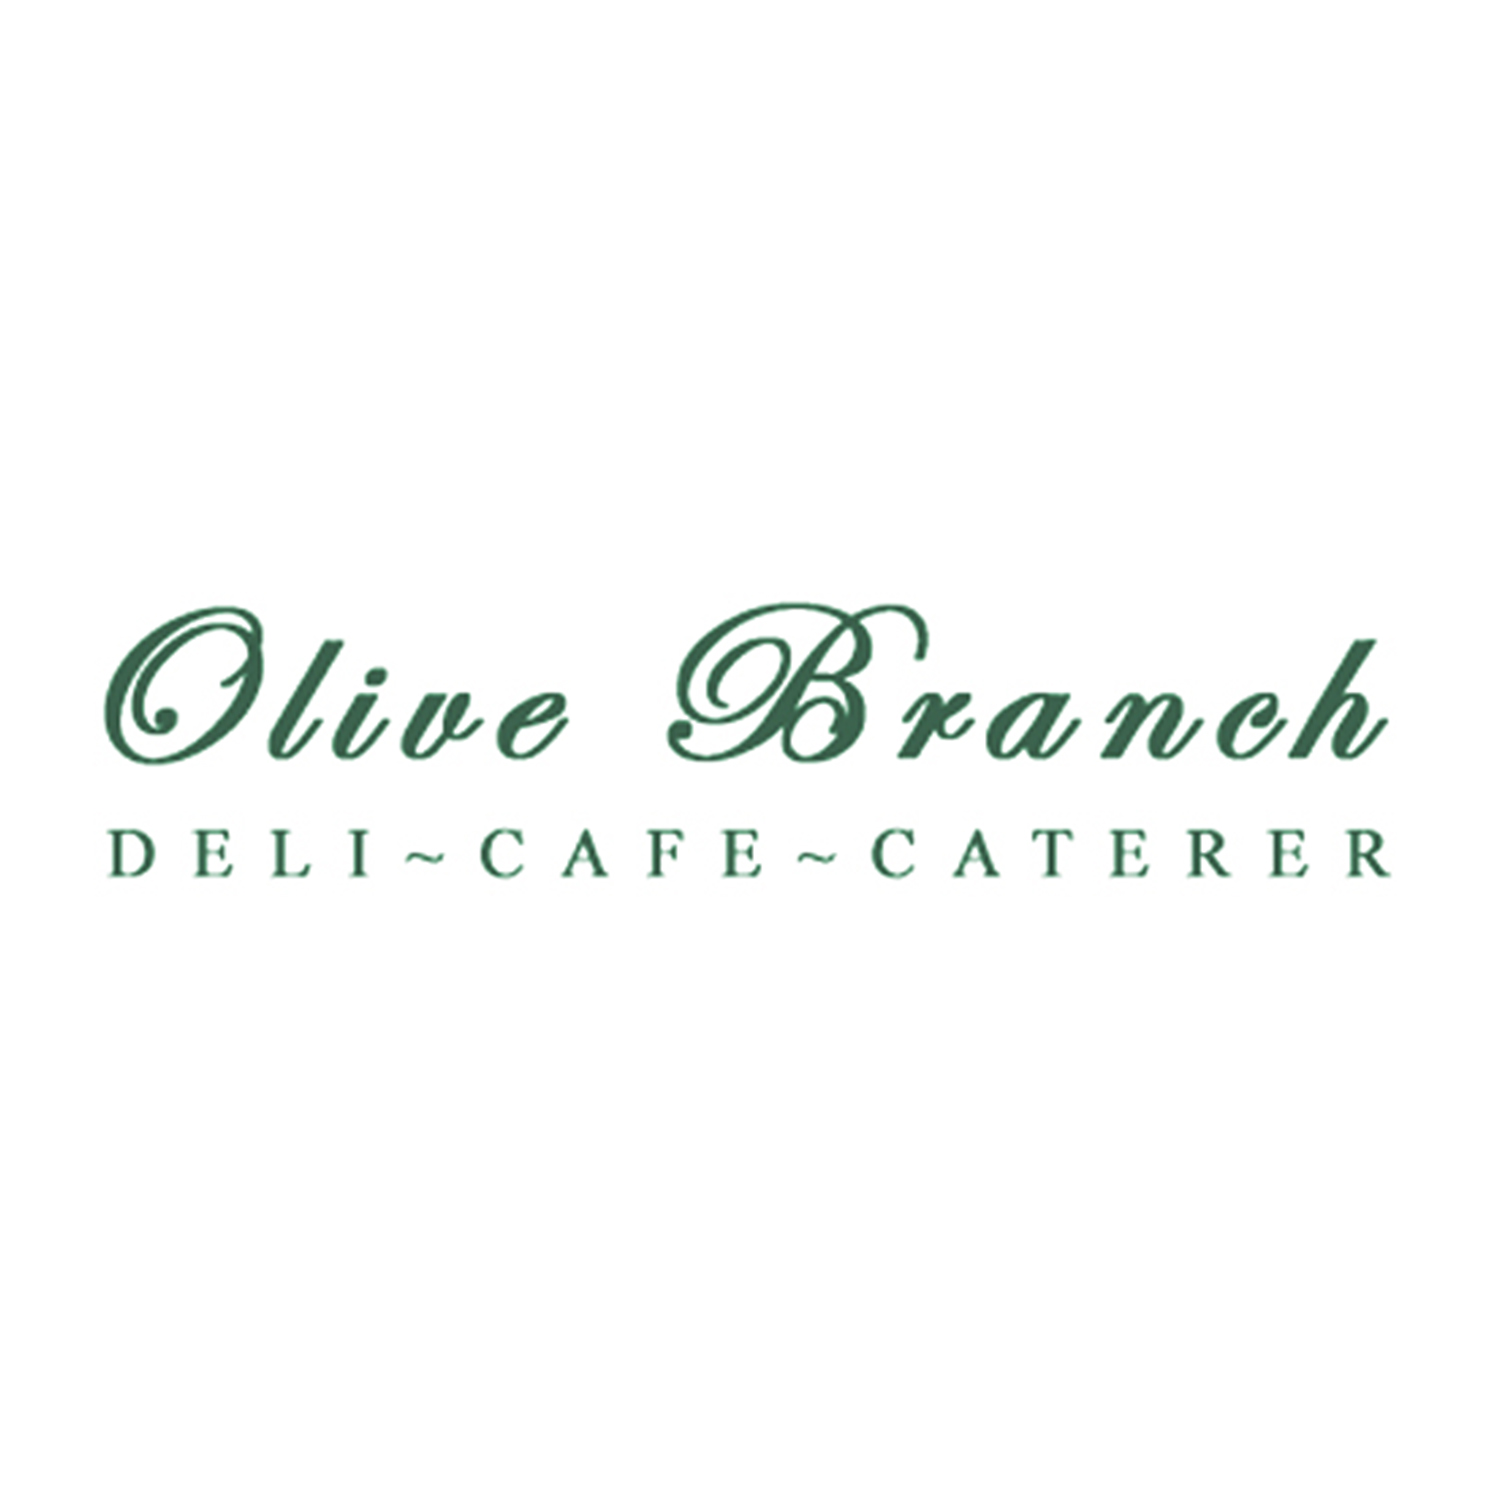 OLIVE BRANCH: Sandwiches, soups, burgers & other casual plates are served at this daytime counter-serve deli.